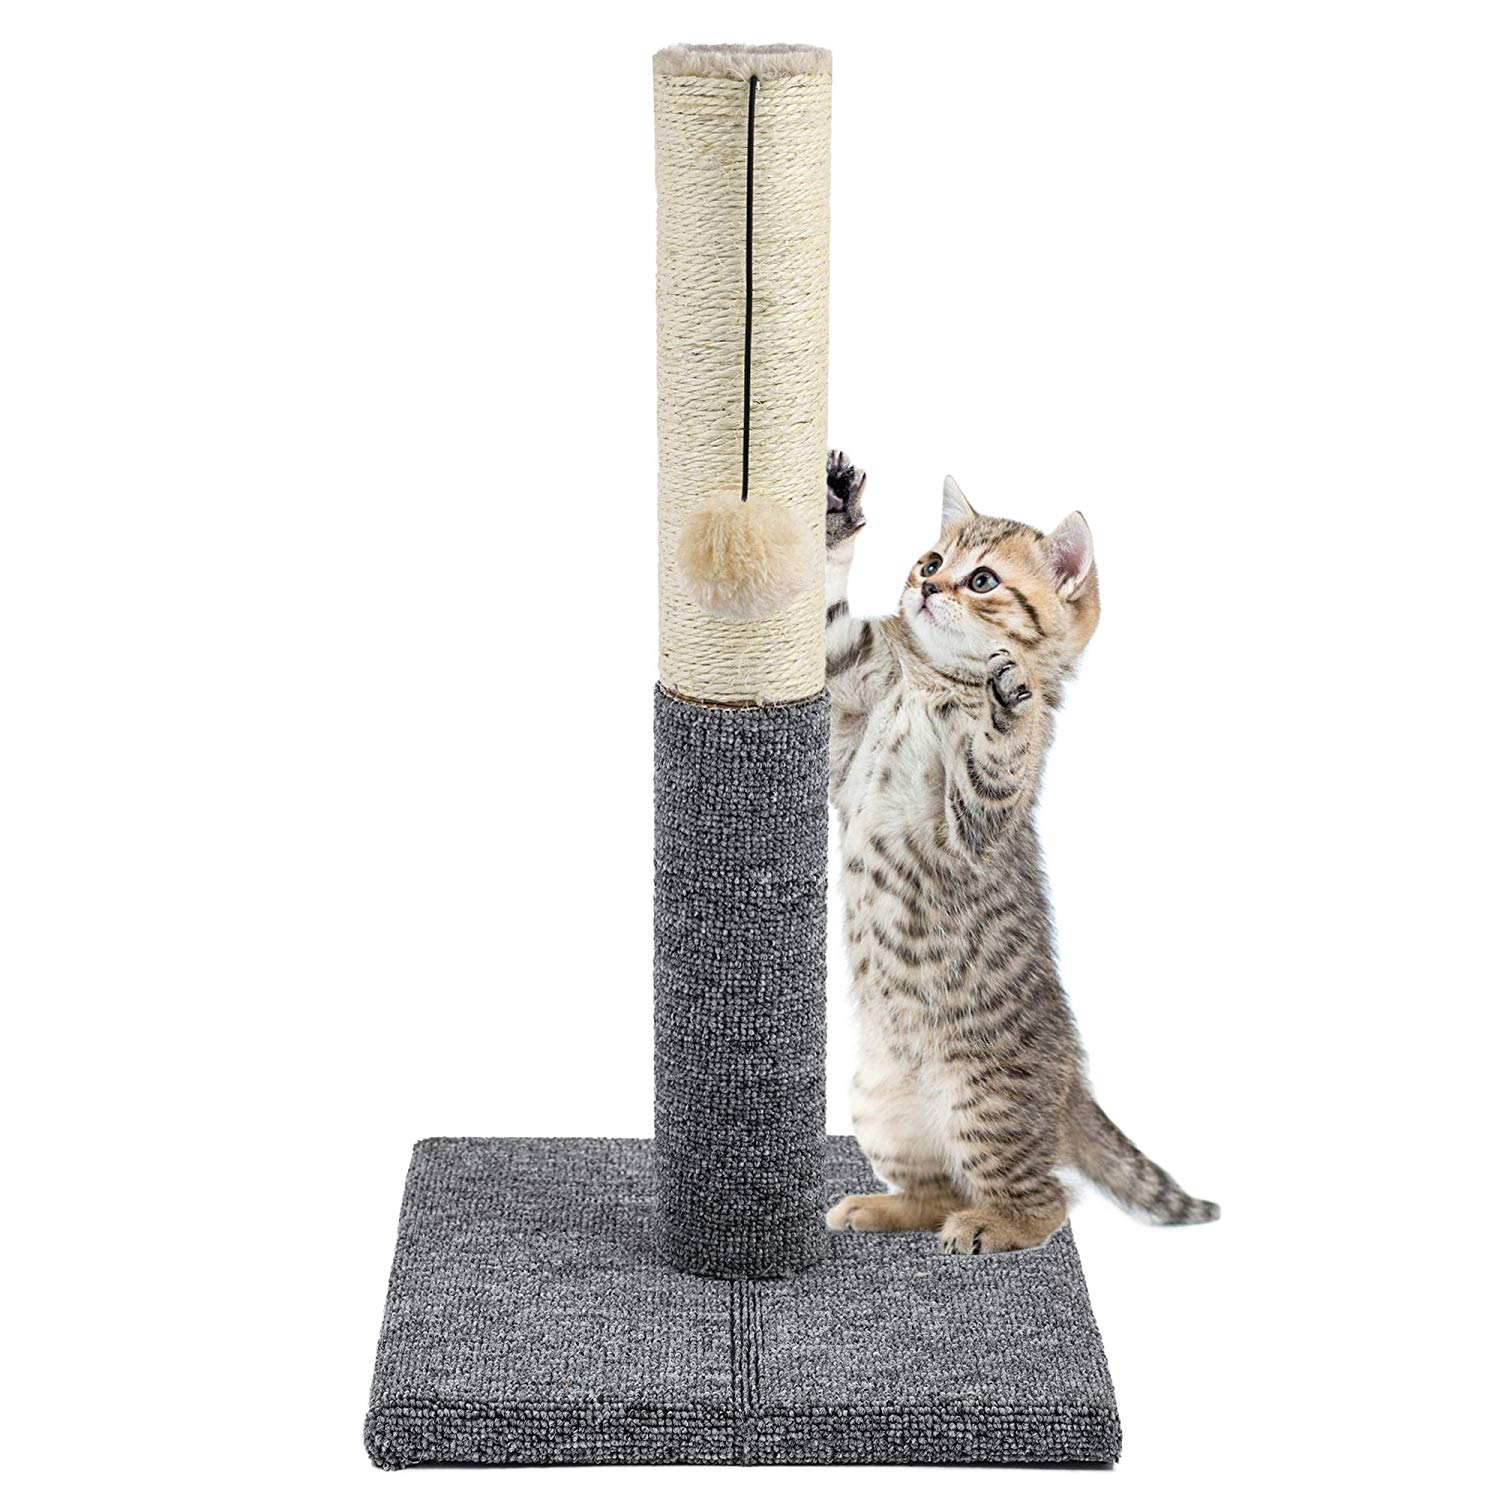 Akarden 20.5' Tall Cat Scratching Post